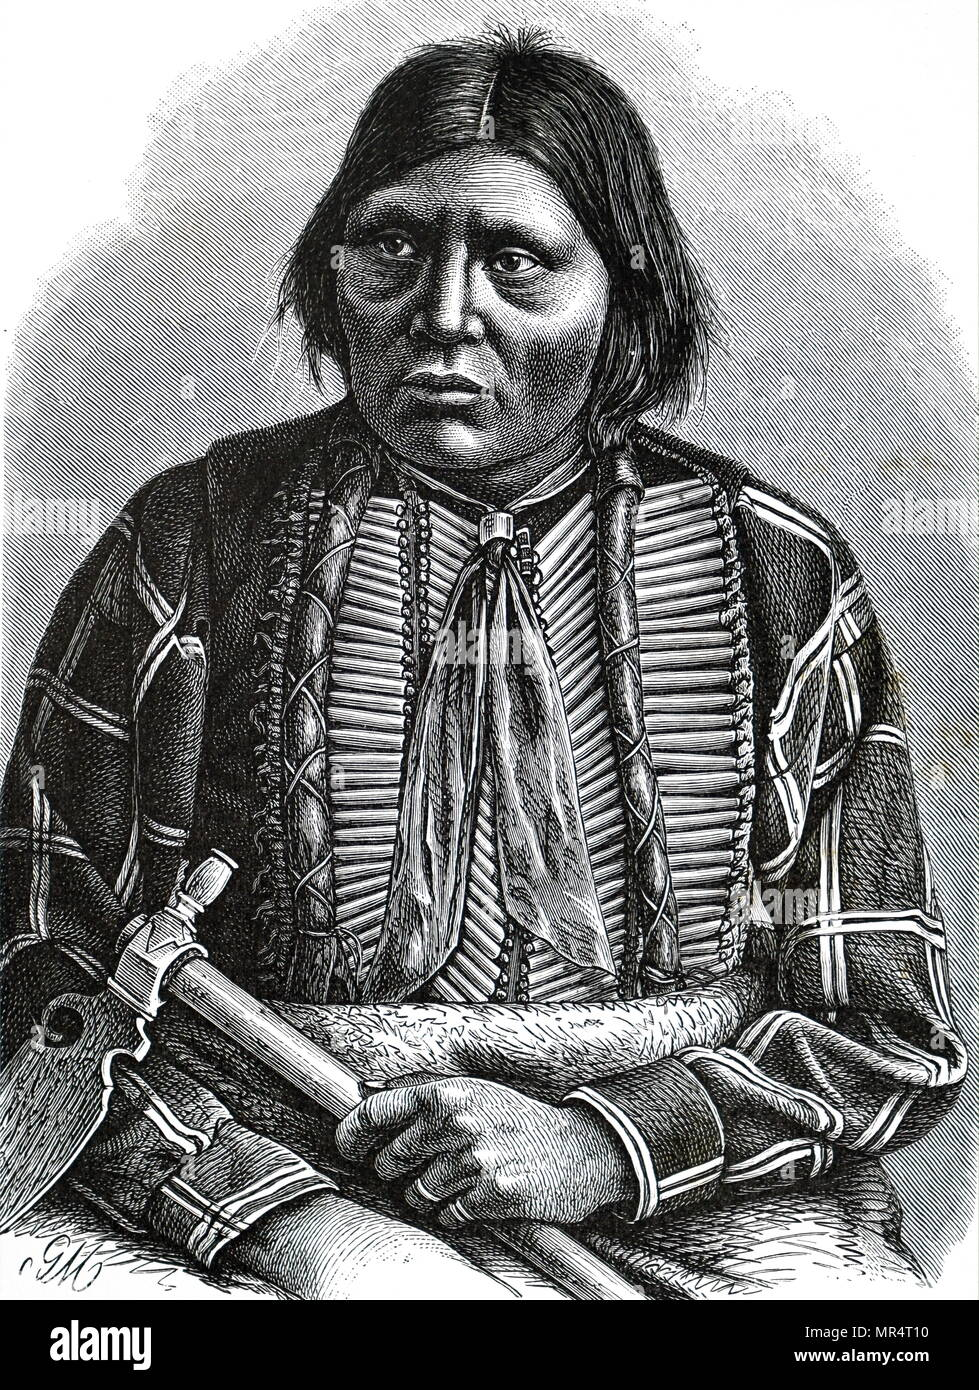 Portrait of Grey Eagle, an Apache chief. The Apache are a group of culturally related Native American tribes in the South-western United States. Dated 19th century - Stock Image